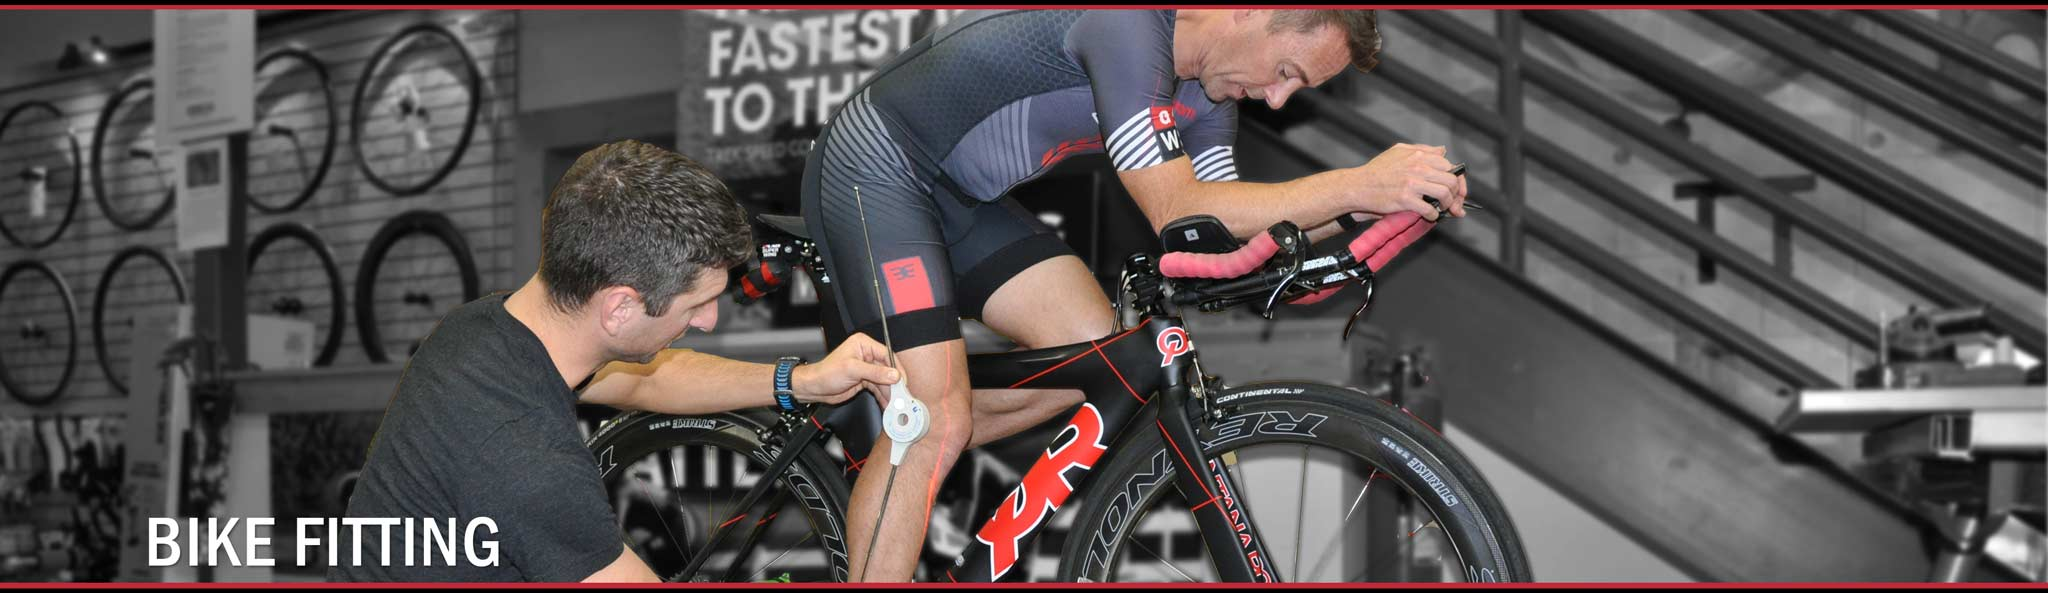 Bike Fitting at Gear West